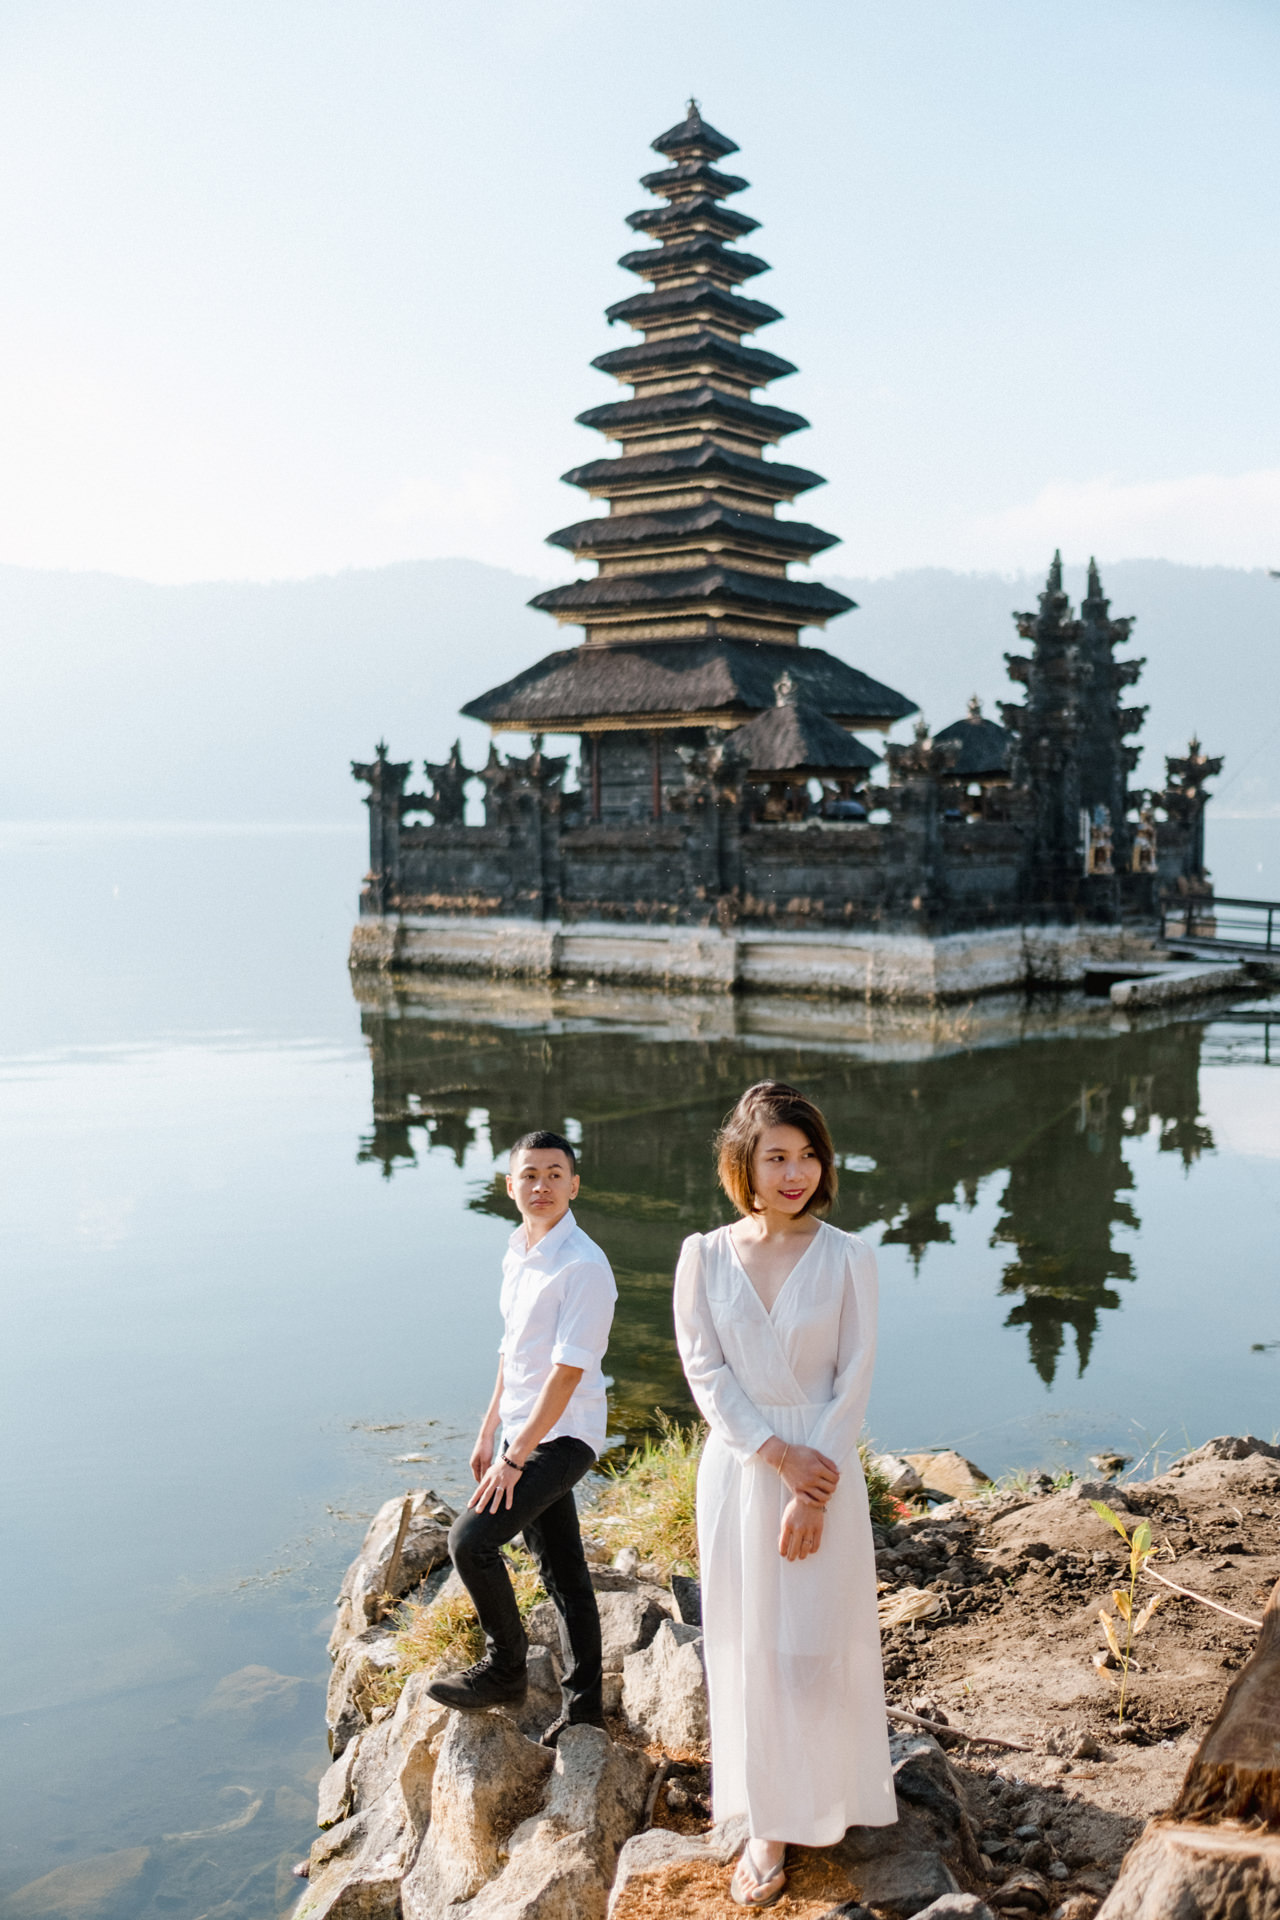 T&K: Bali Prewedding Photo Session in The Mountains 9